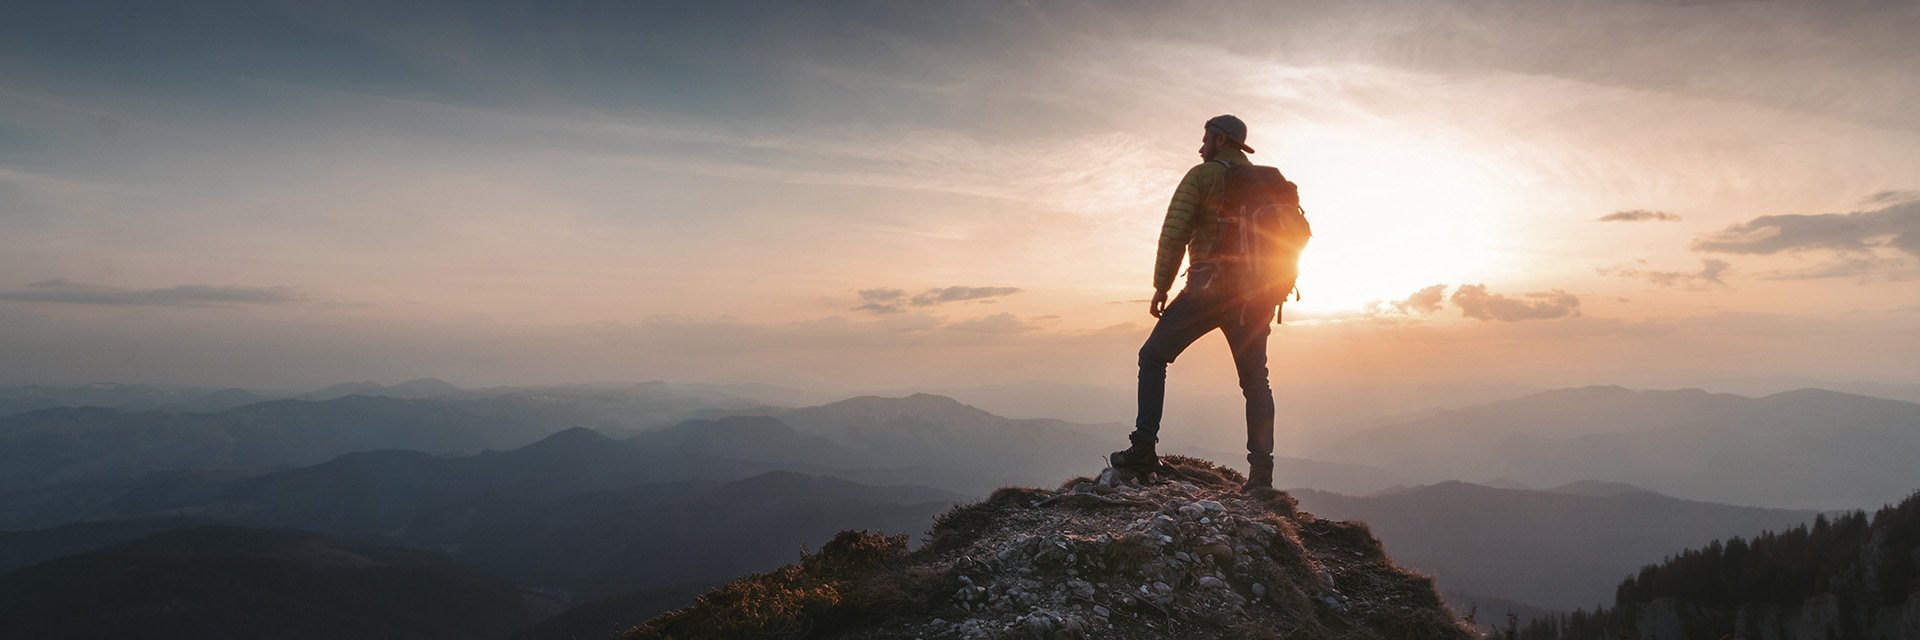 man standing at the top of a mountain looking out over the landscape